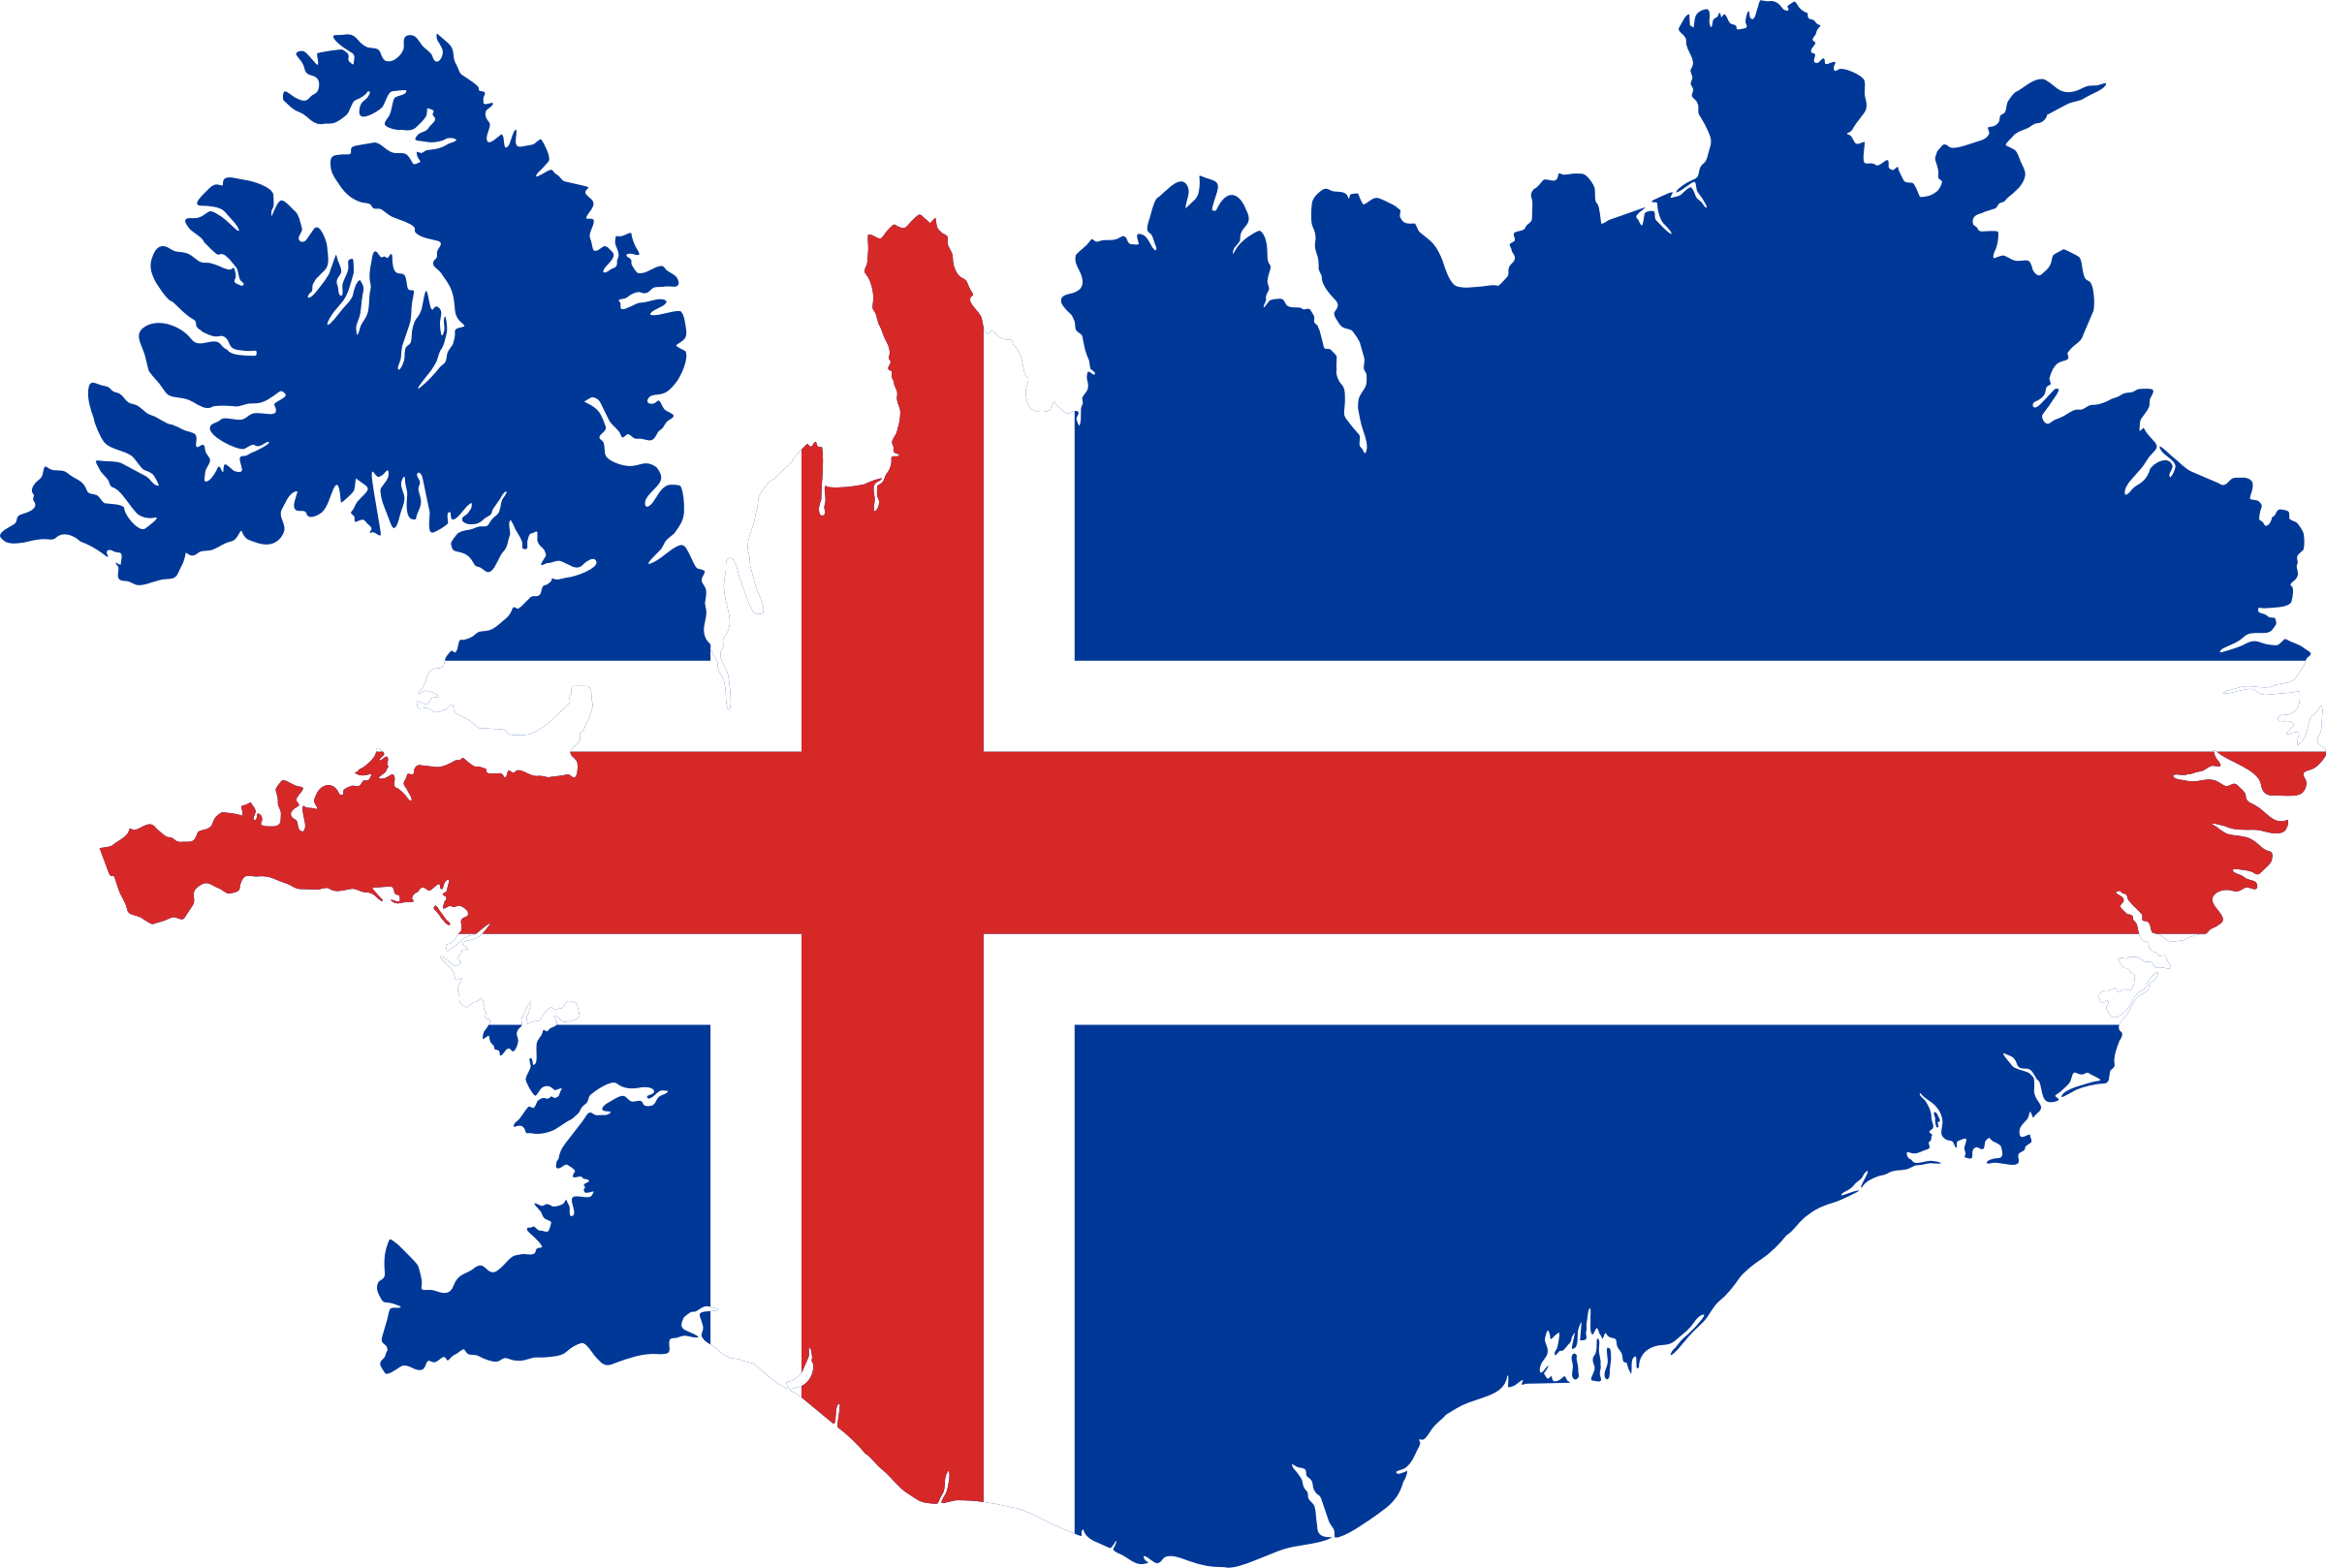 Svg flags pdf. Iceland flag map icons